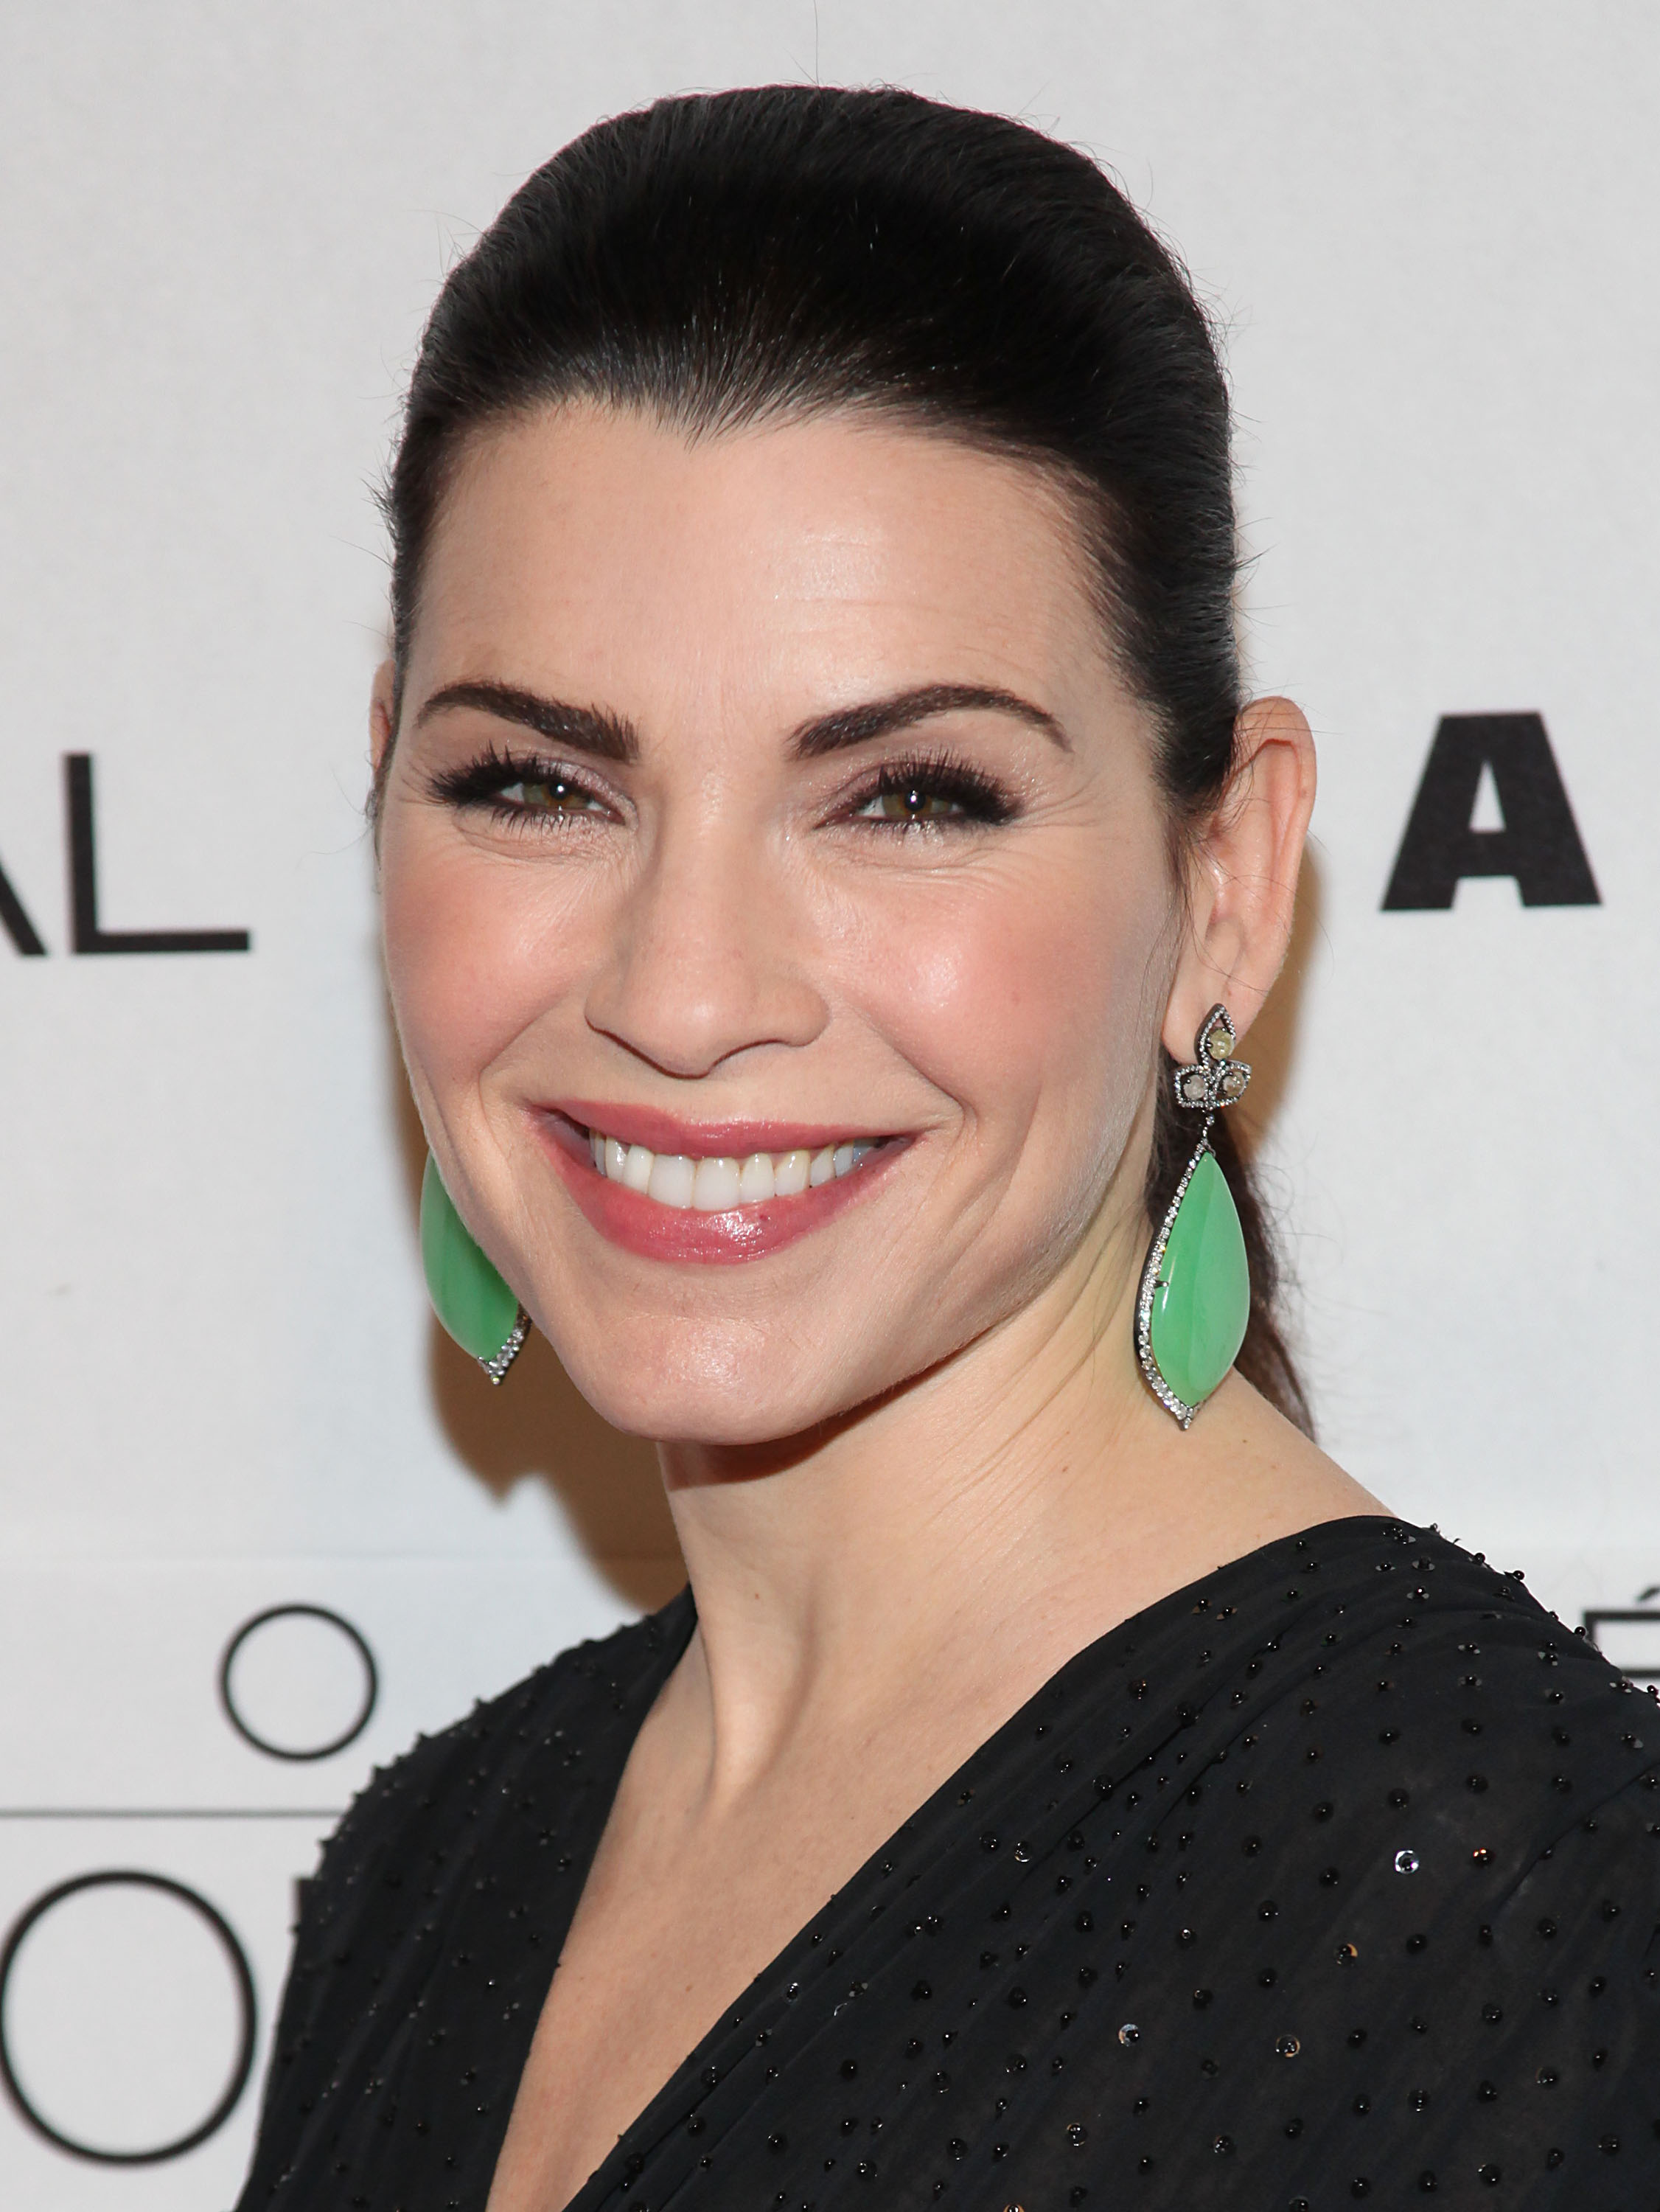 Julianna Margulies worth